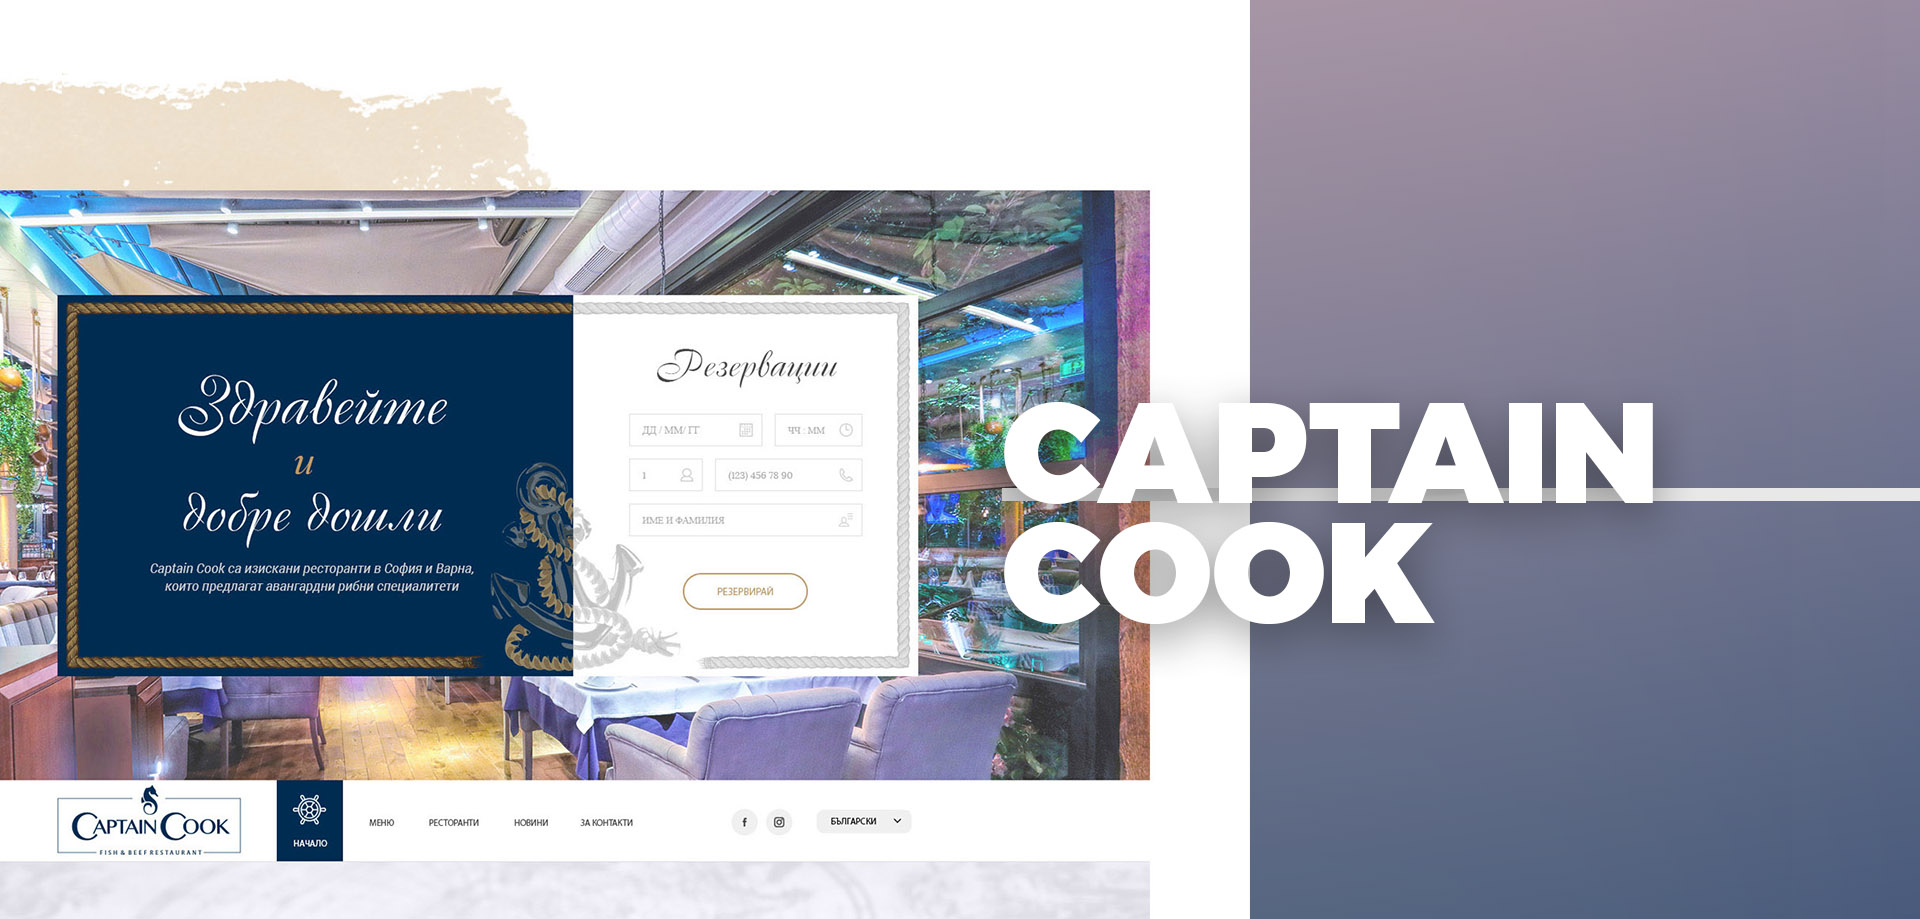 afterteam projects wordpress 04 captain cook 2019 banner01